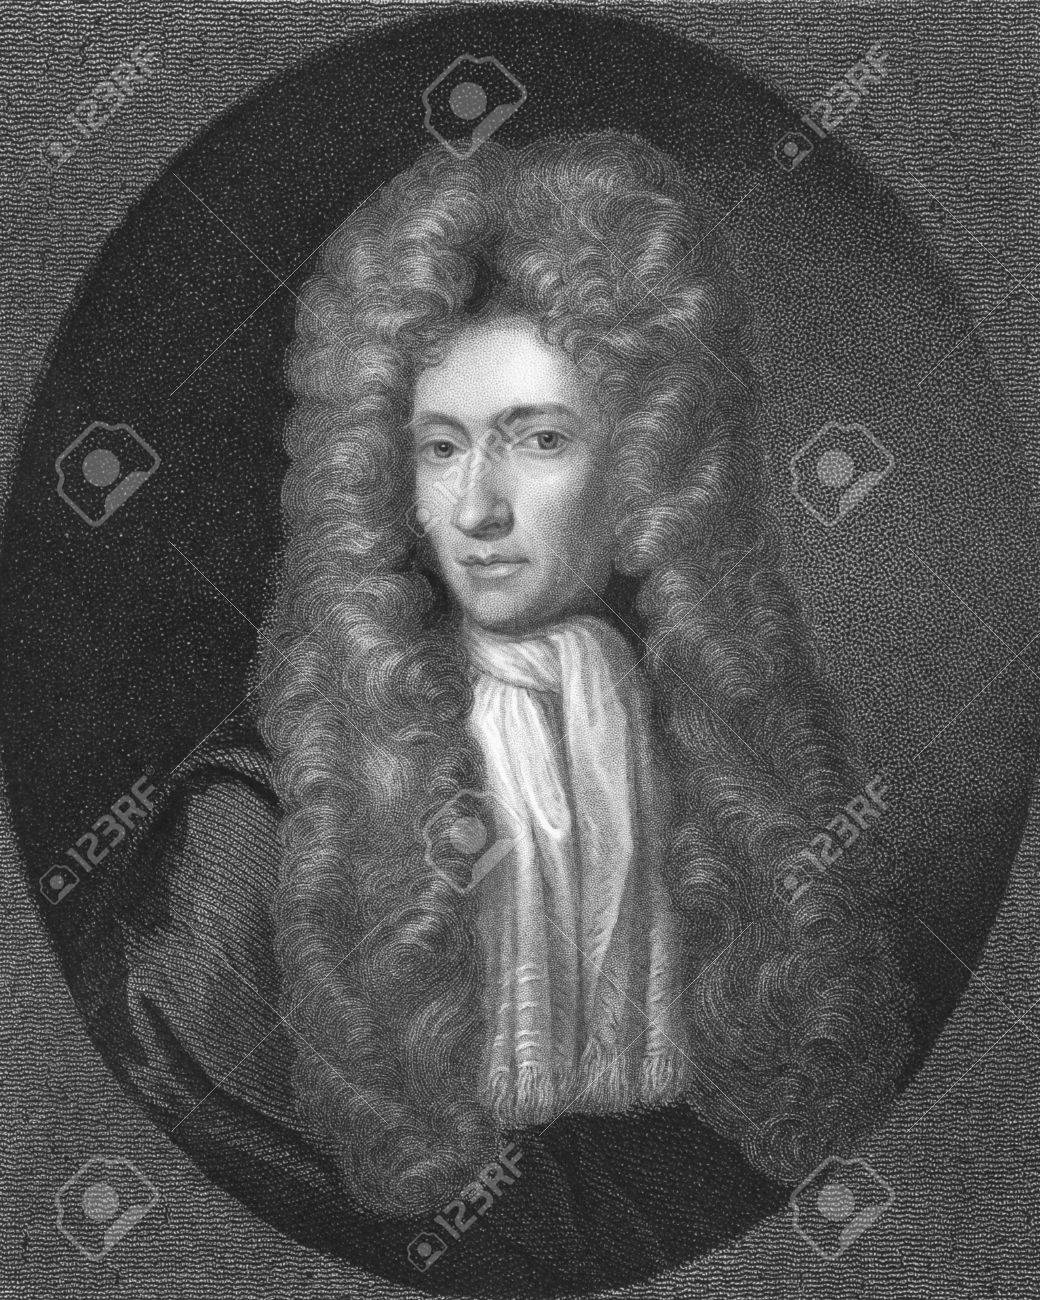 Robert Boyle on engraving from the 1850s. Irish natural philosopher, chemist, physicist, inventor and gentleman scientist, also noted for his writings in theology. One of the founders of modern chemistry. Stock Photo - 6222030